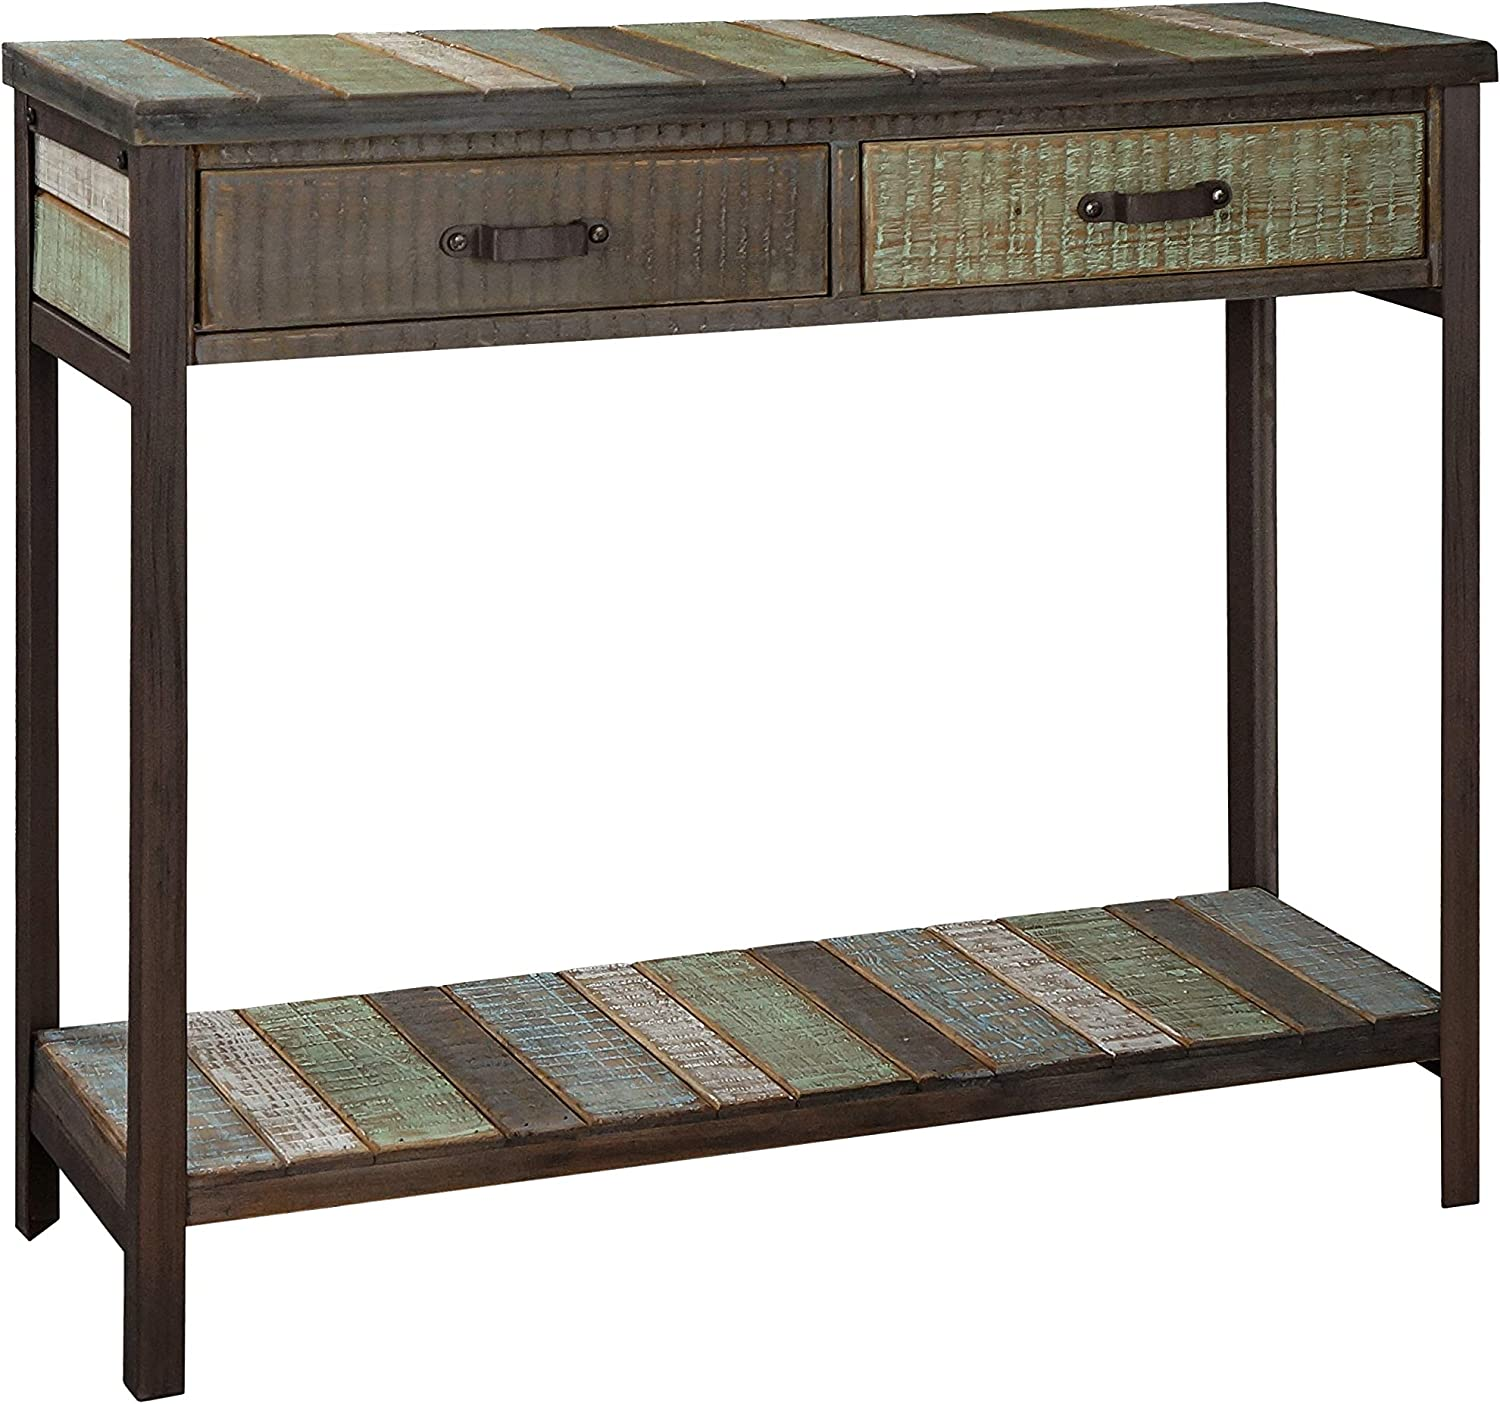 RANDEFURN Rustic Solid Wood Sofa Table,Console Table with 2 Drawers and Shelf, 35x12x31.5 inches, Entryway Table with Storage, Metal Legs, Coffee Table Antique Country Style, Living Room,Hallway,Blue